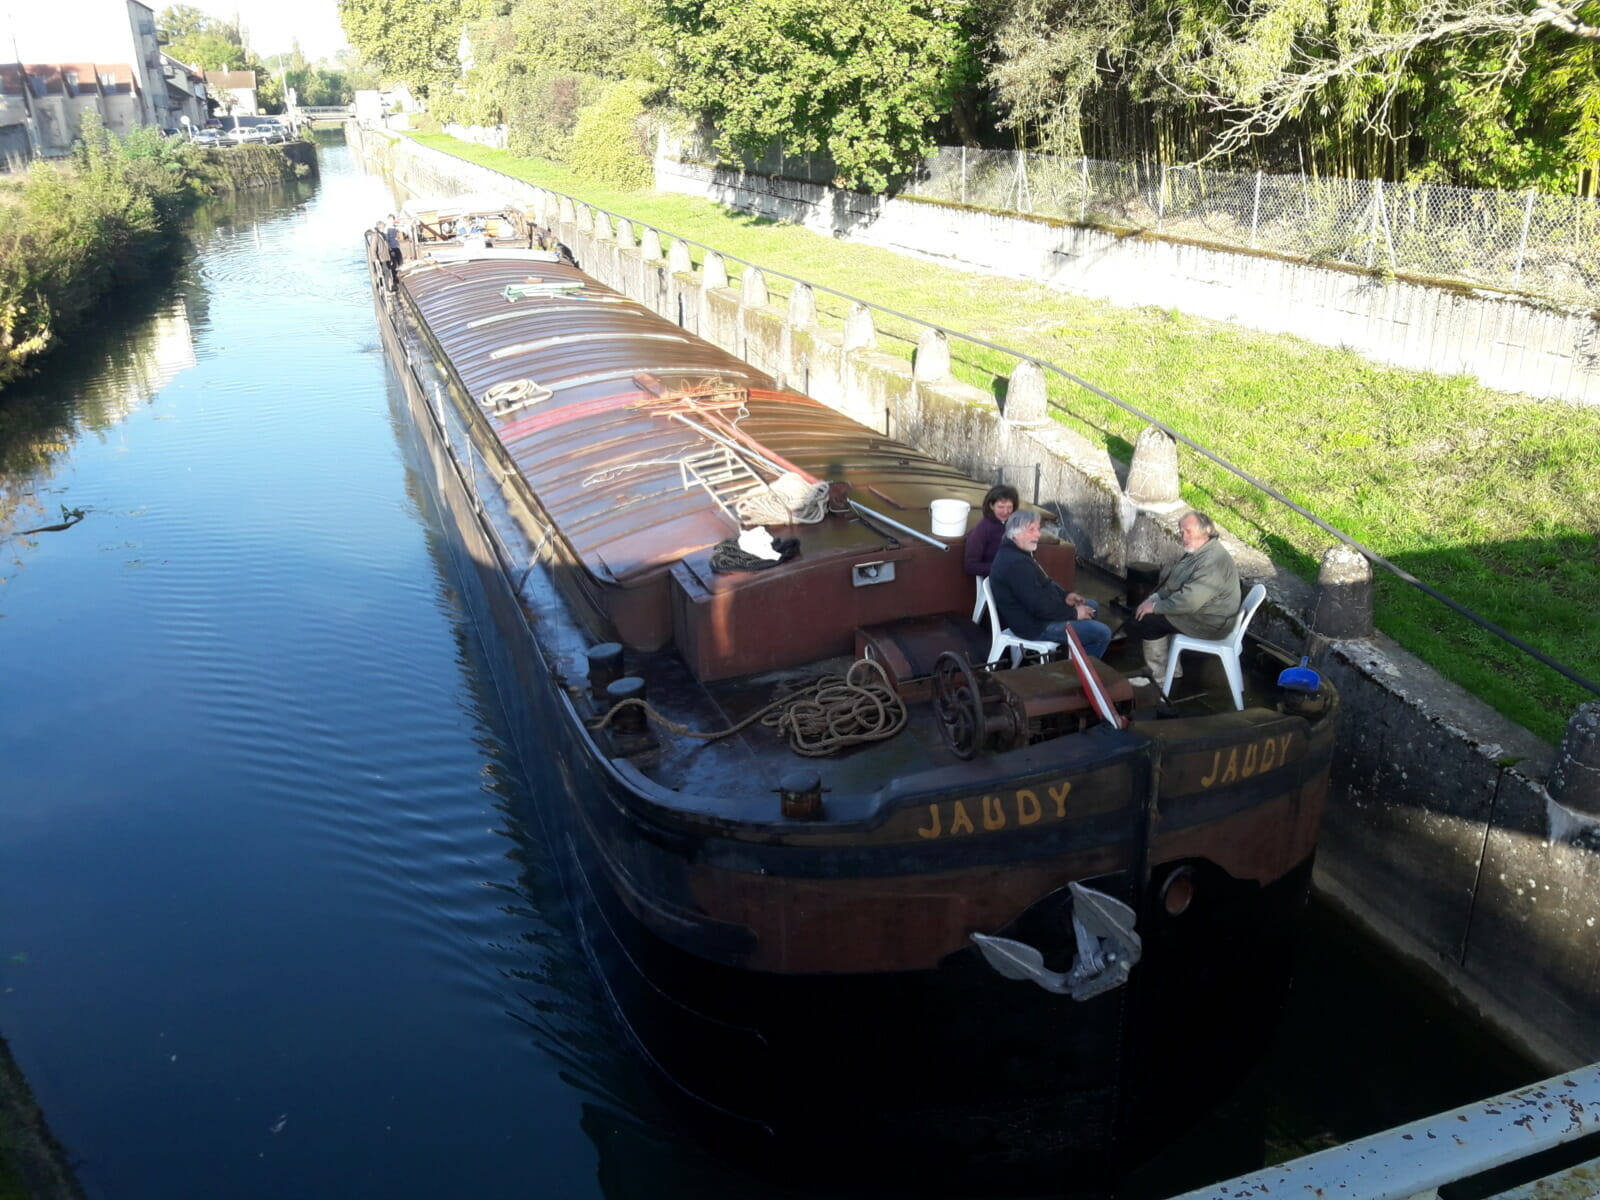 Barge with people on